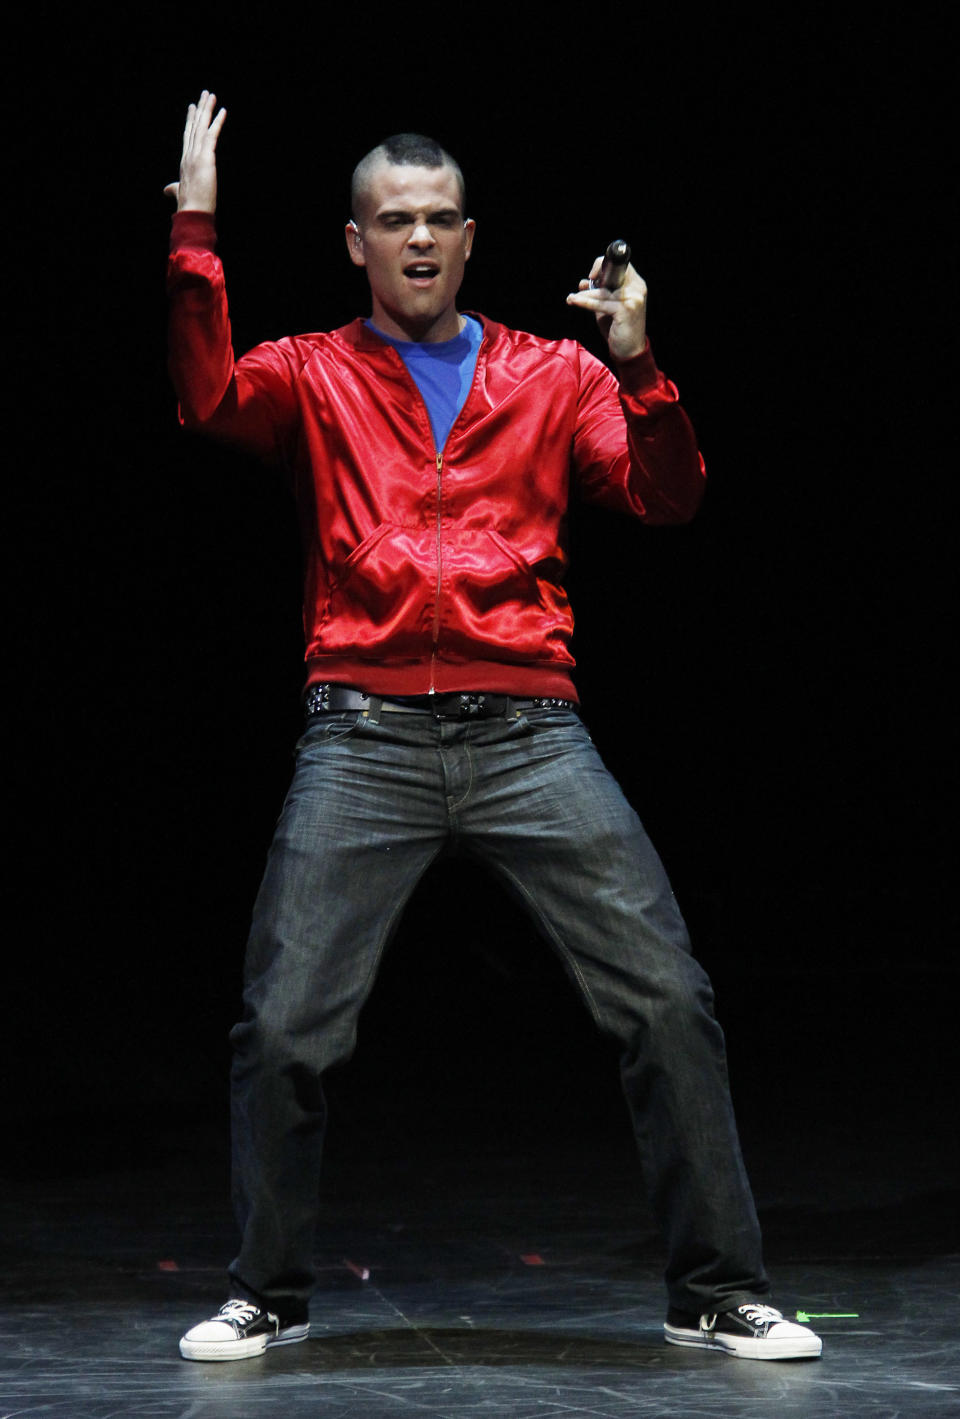 """Mark Salling, a cast member of the popular television show """"Glee"""",  performs during a concert to kickoff a national """"Glee"""" tour at the Dodge Theatre Saturday, May 15, 2010, in Phoenix. (AP Photo/Ross D. Franklin)"""